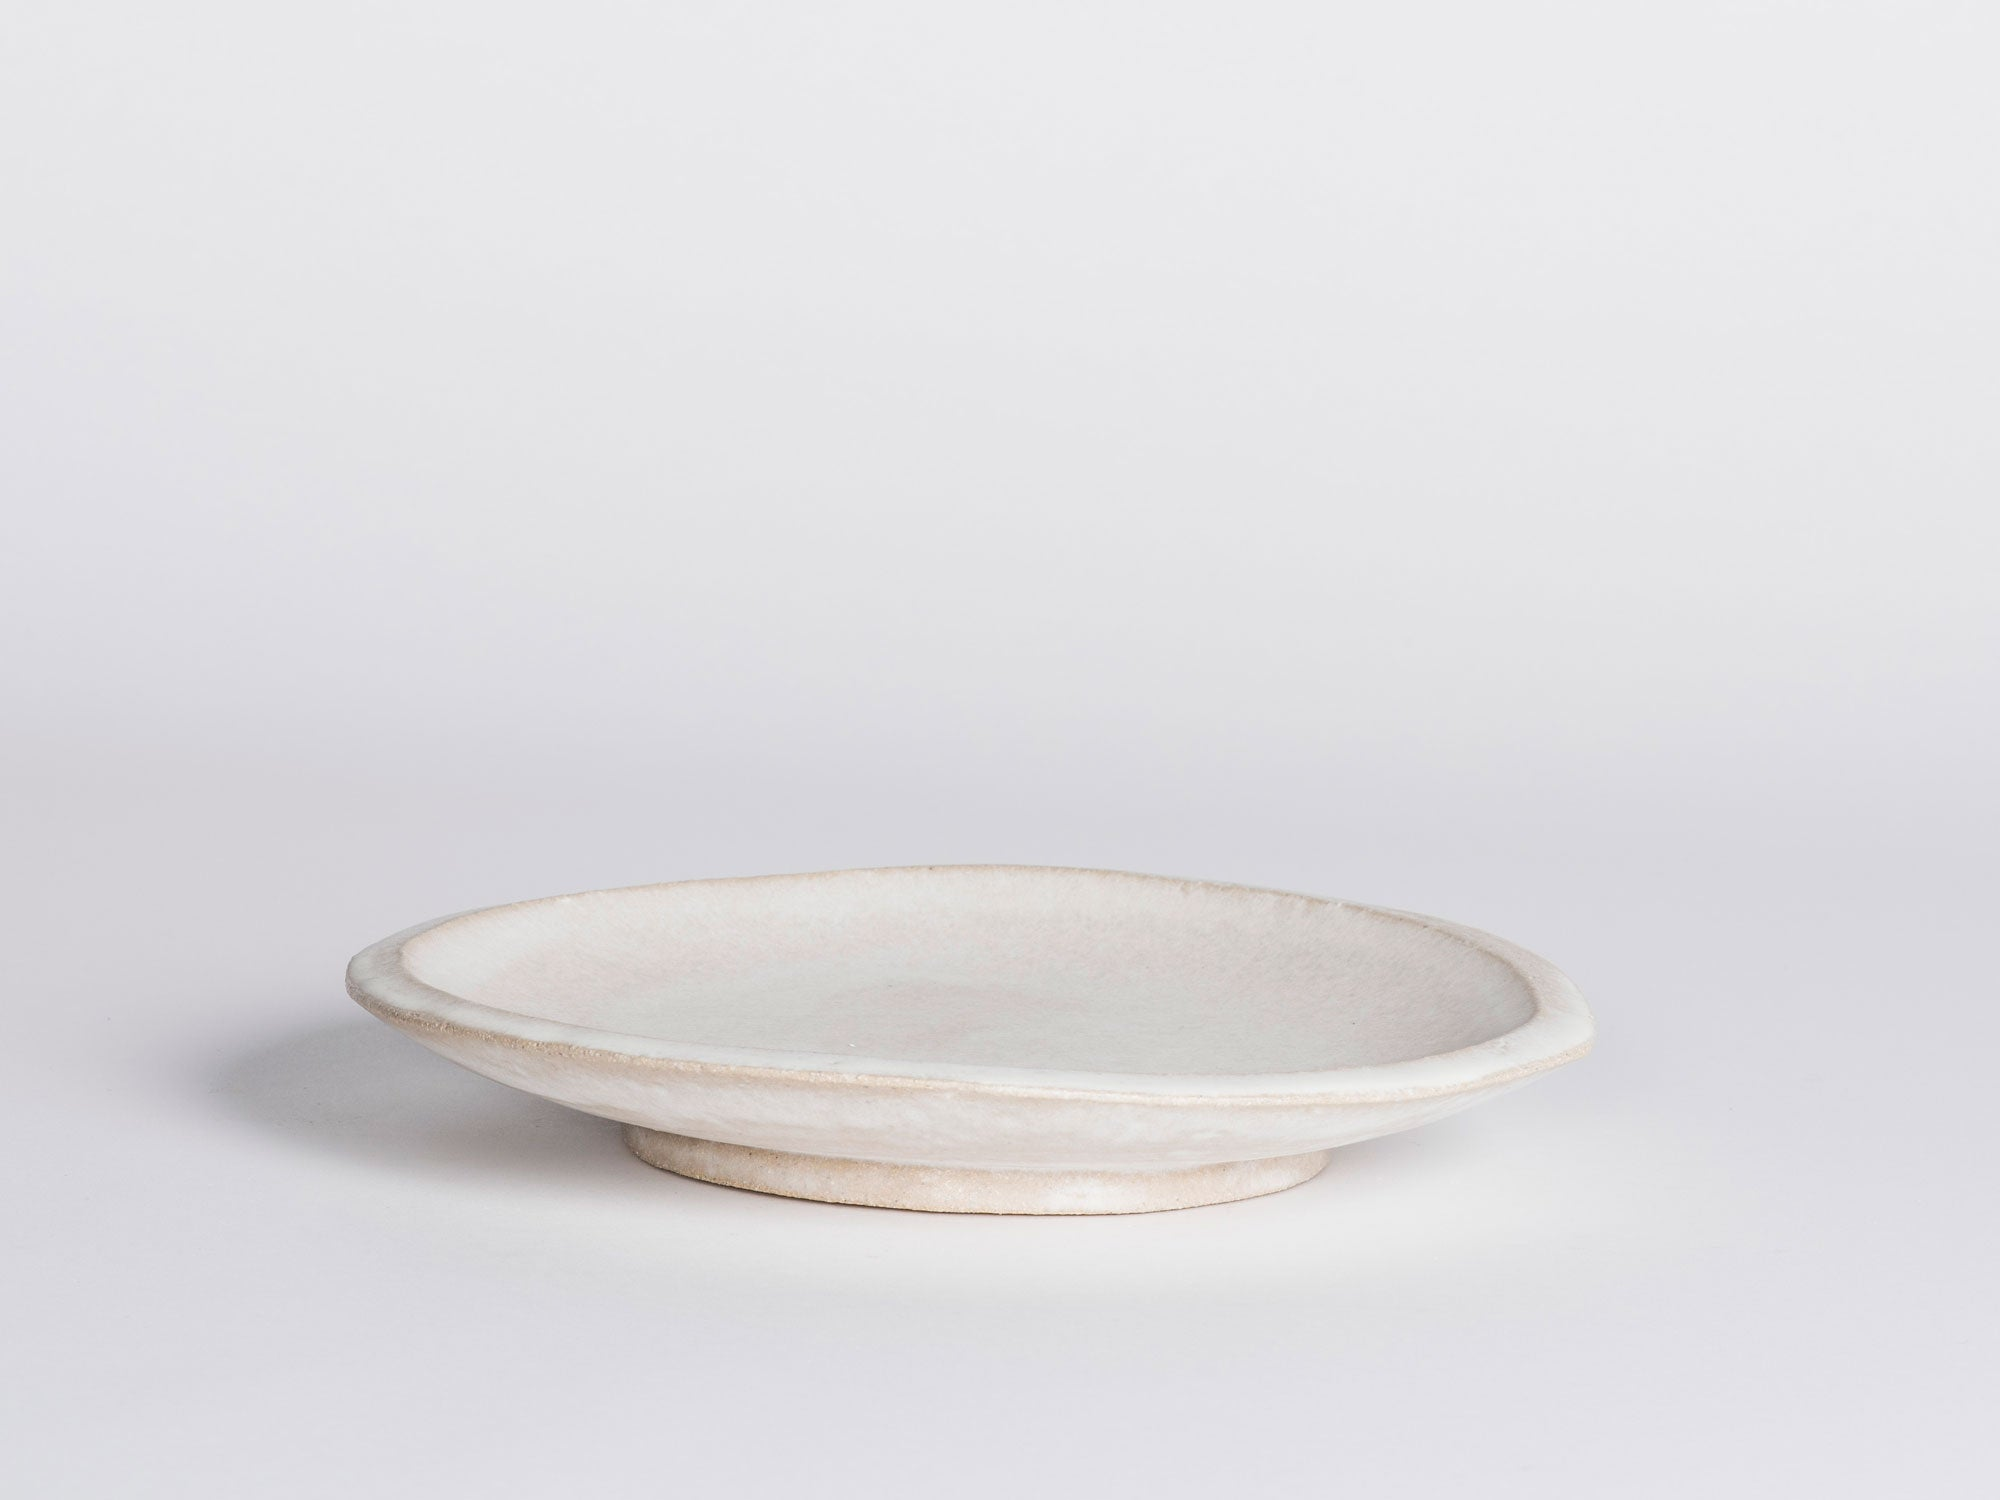 Morgan Peck Round Platter - Frosted White